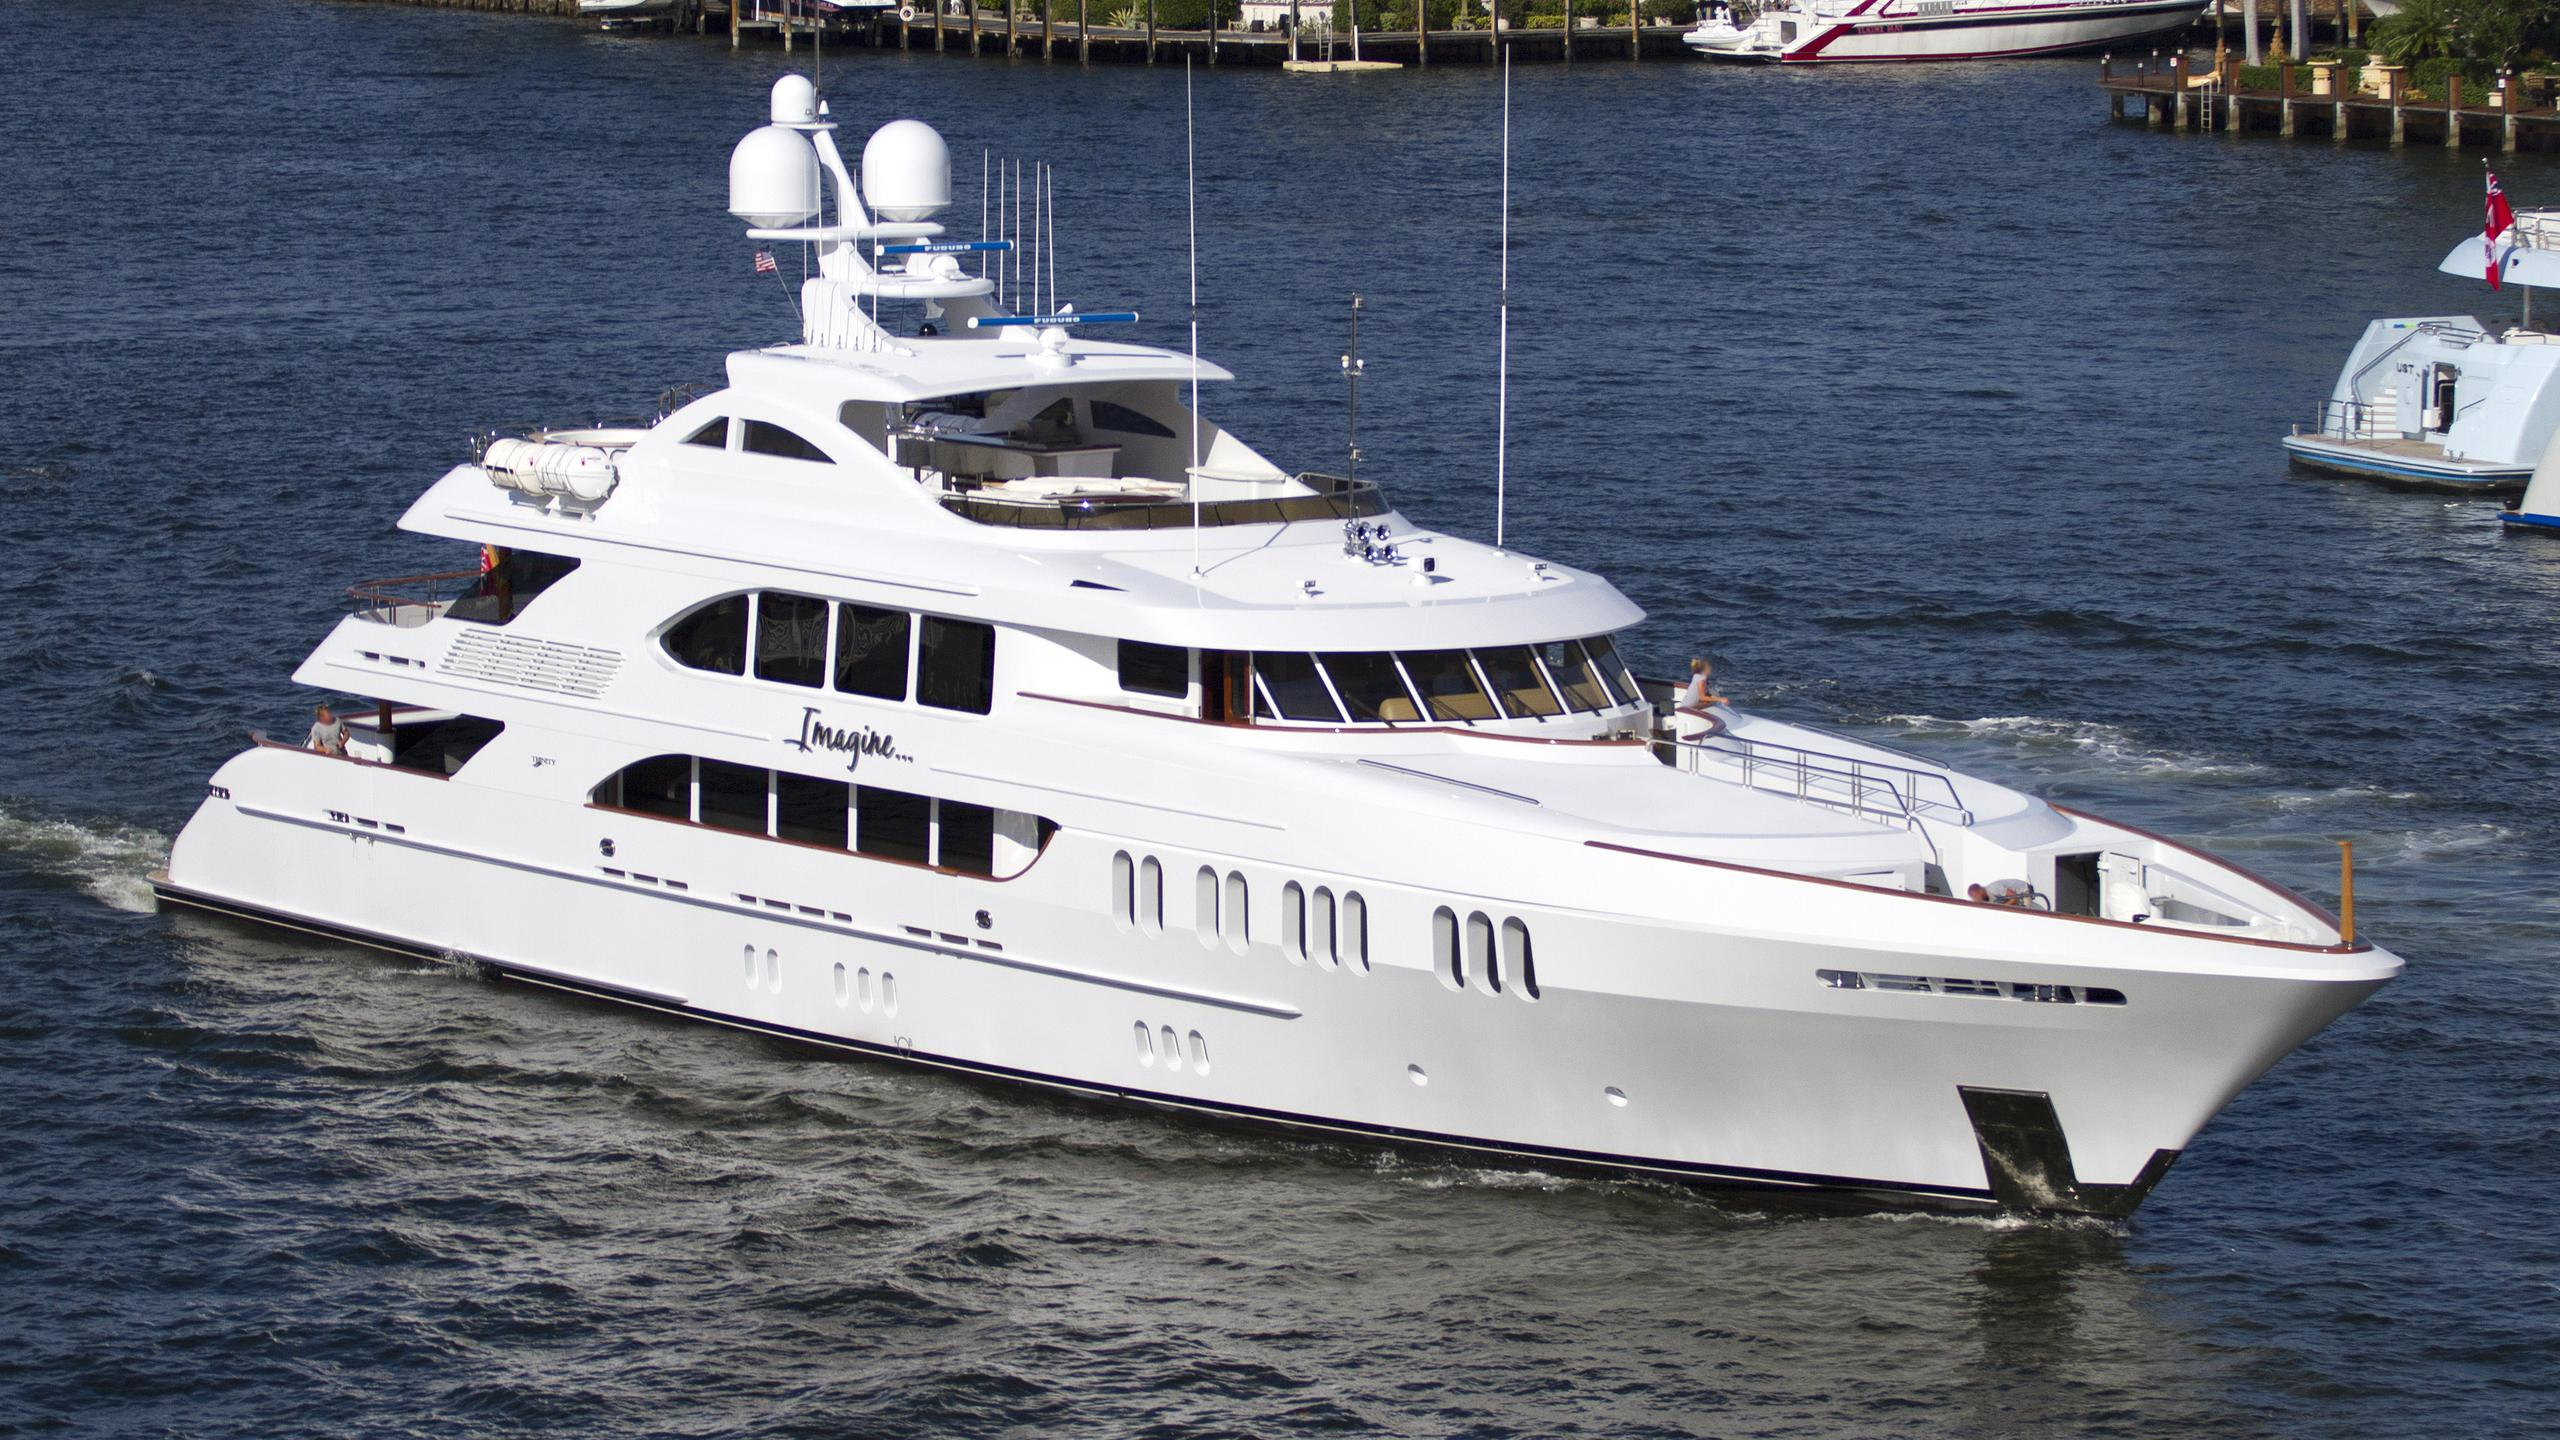 trinity-aspen-alternative-2010-motor-yacht-running